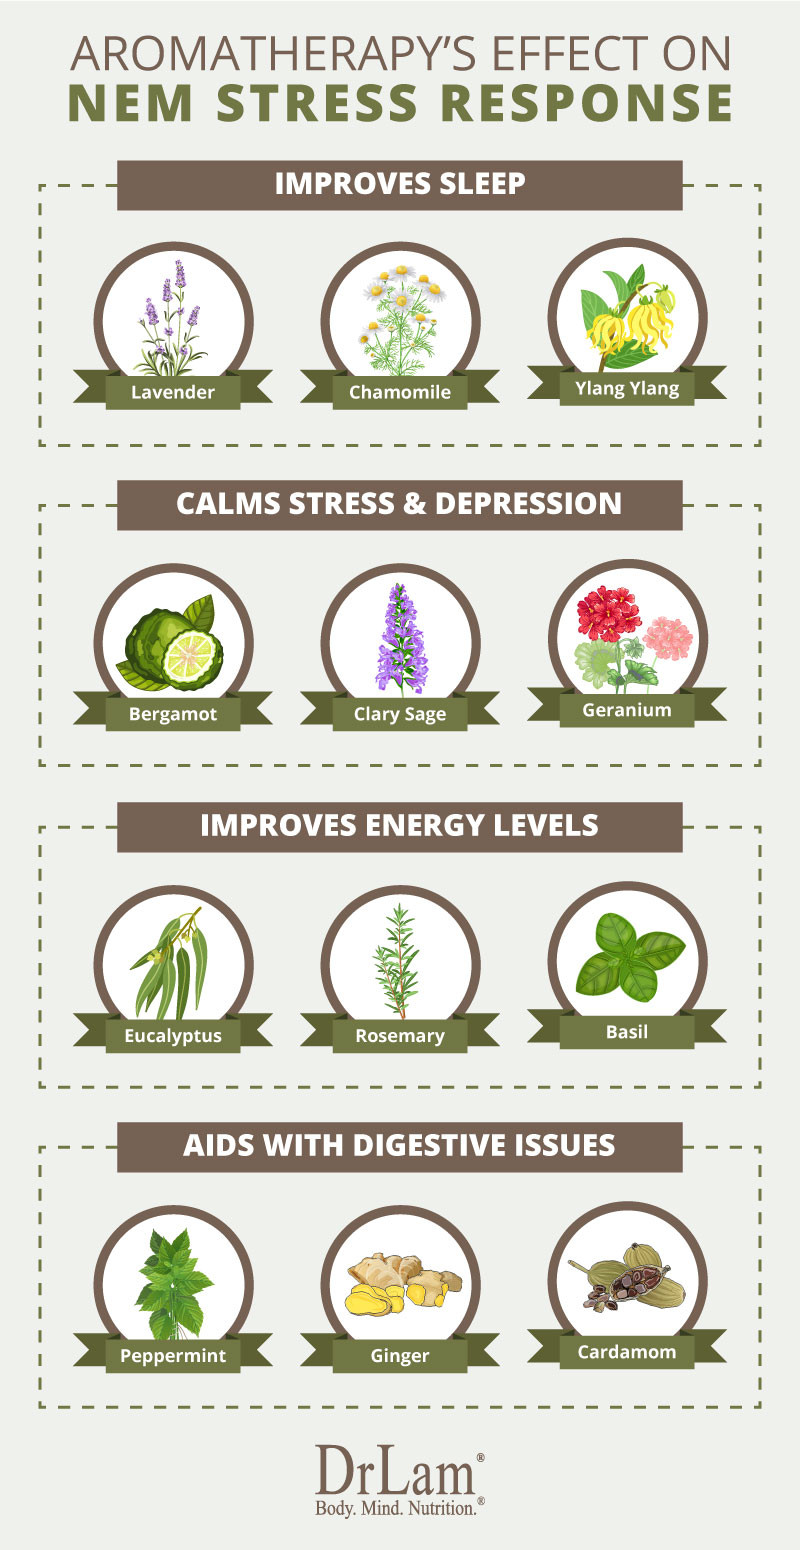 Check out this easy to understand infographic about aromatherapy benefits for NEM stress response